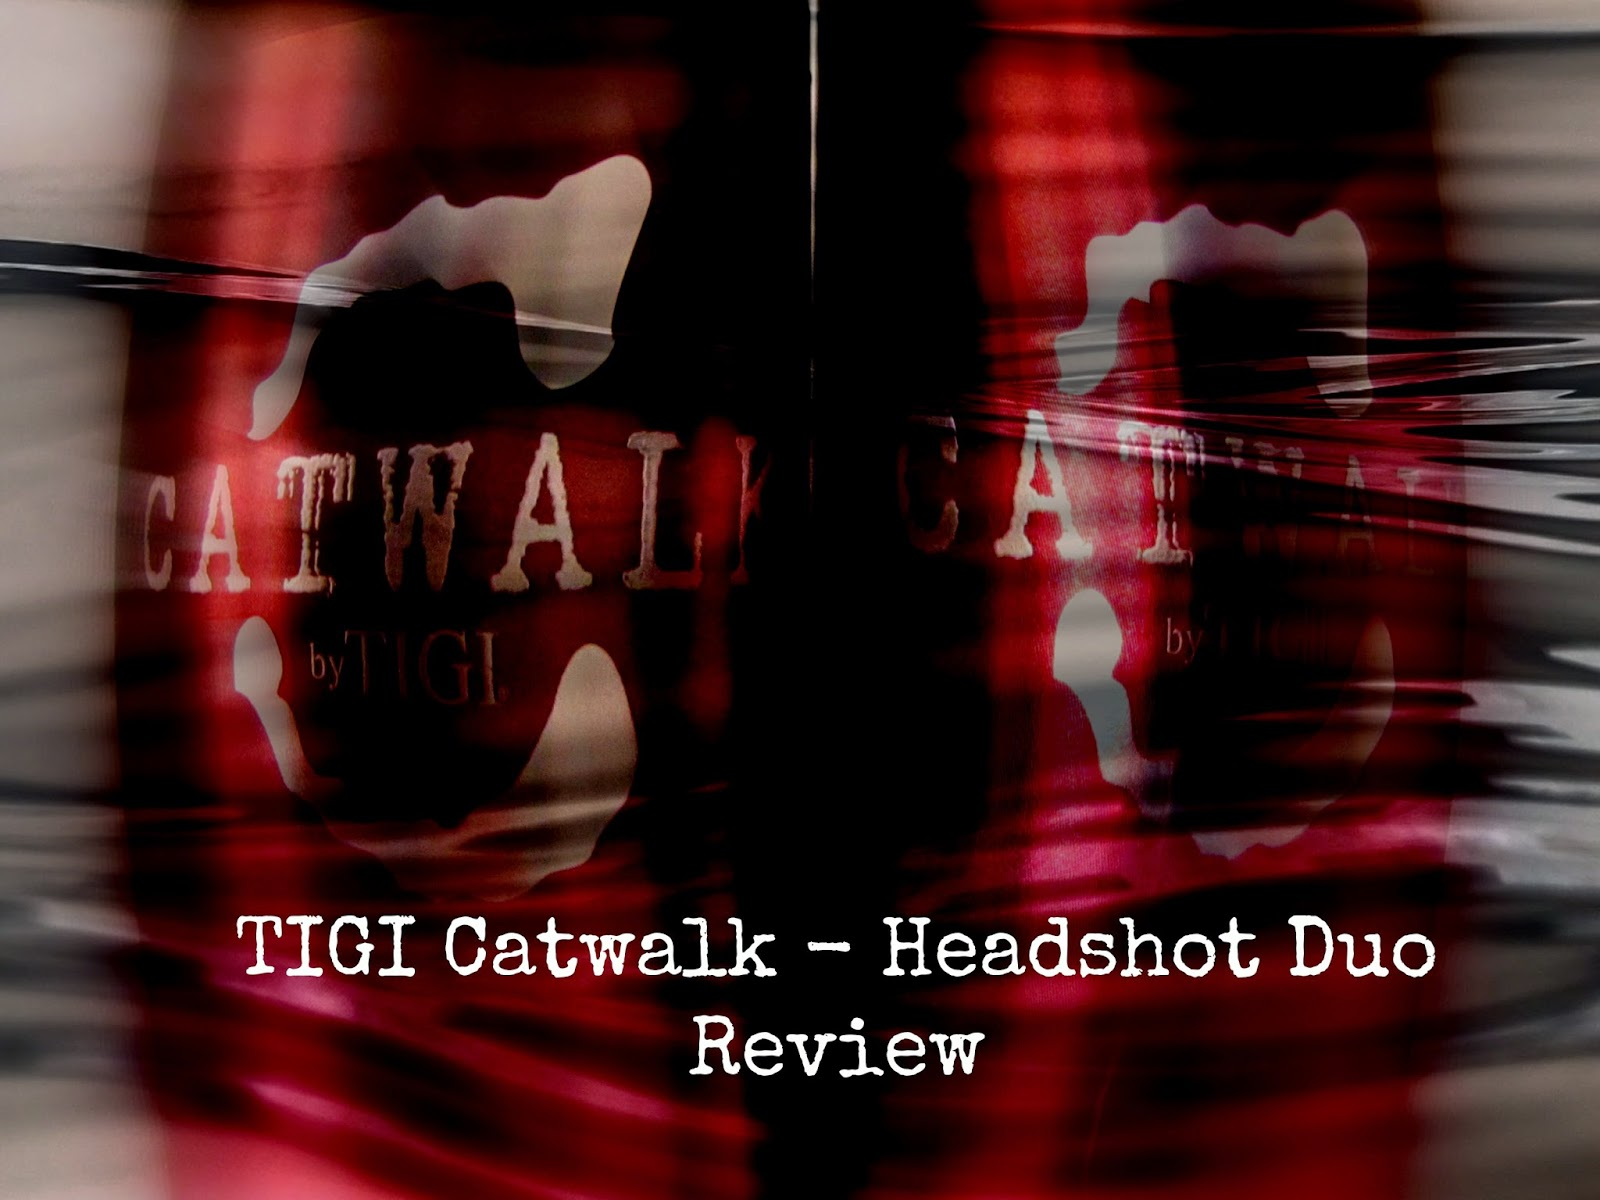 TIGI catwalk headshot duo review image from music and eyeliner